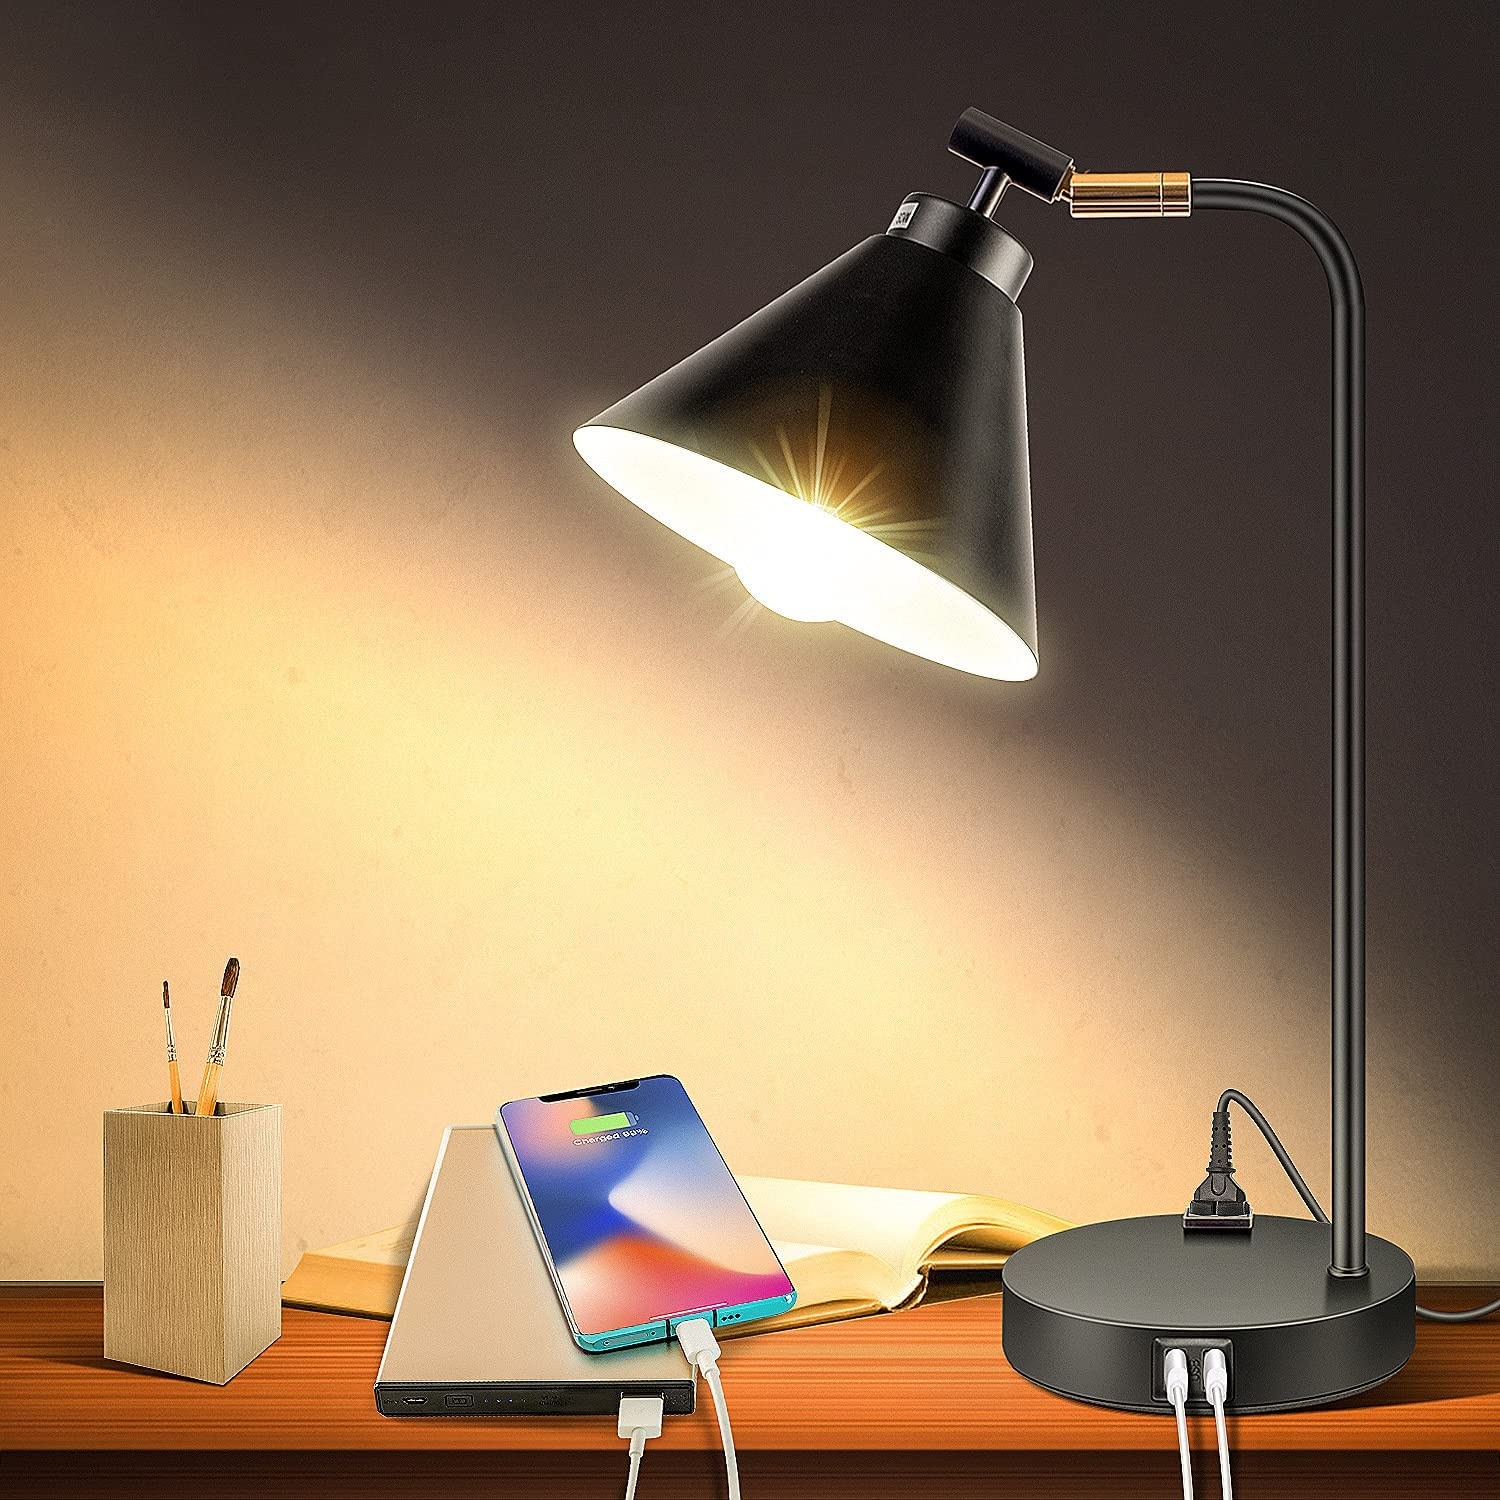 XZN Max 82% OFF 25% OFF Industrial Touch Control Desk Lamp USB Out Ports with AC 2